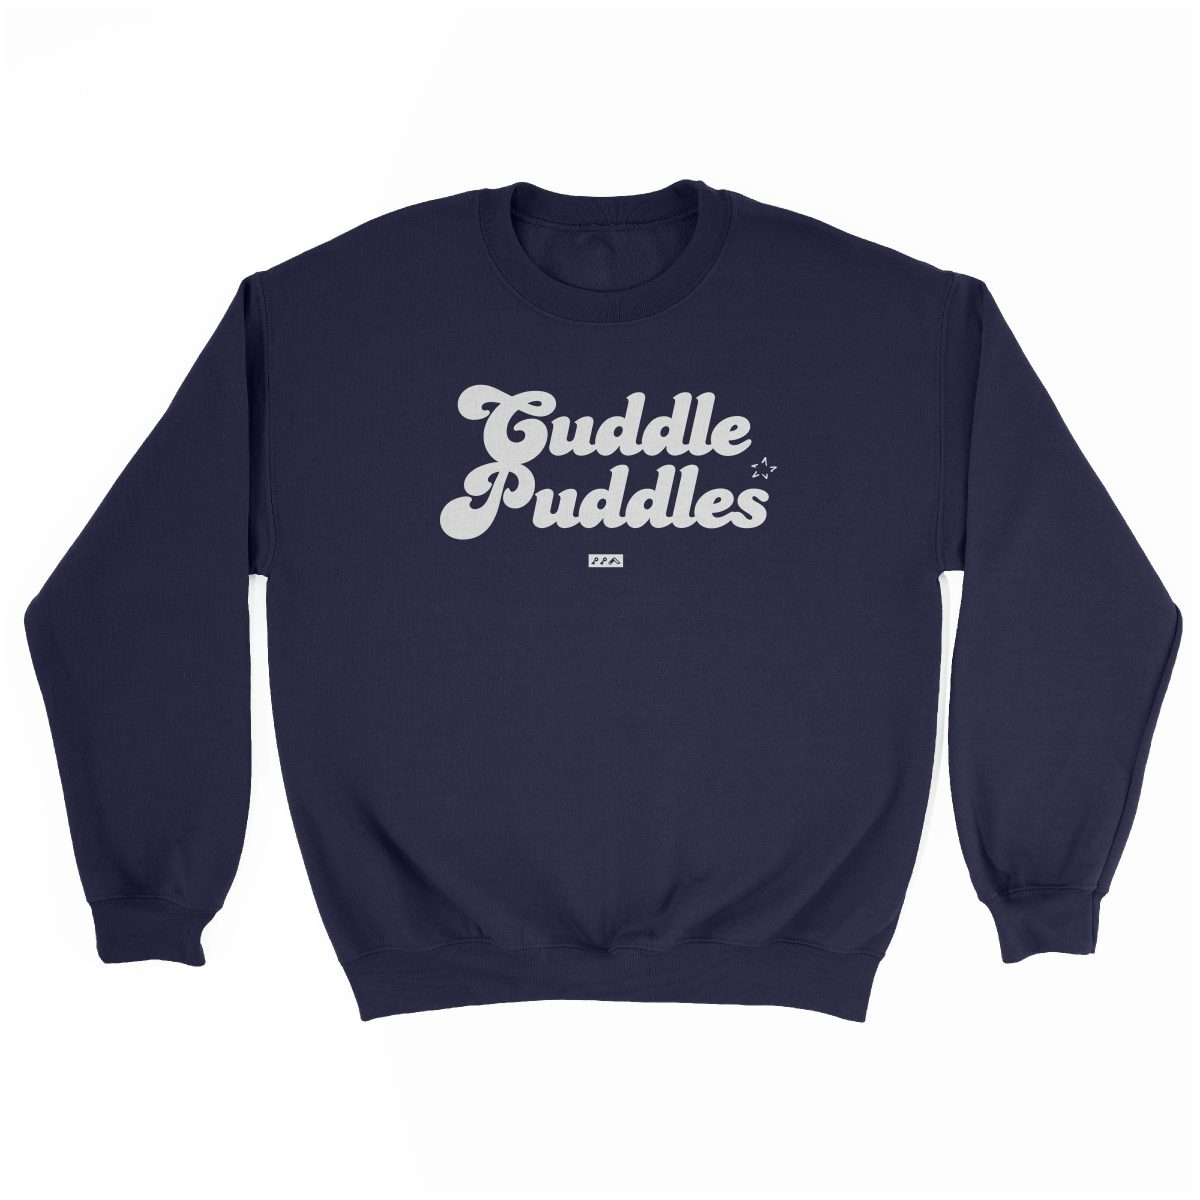 CUDDLE PUDDLE PARTY comfy sweatshirt in navy at kikicutt.com